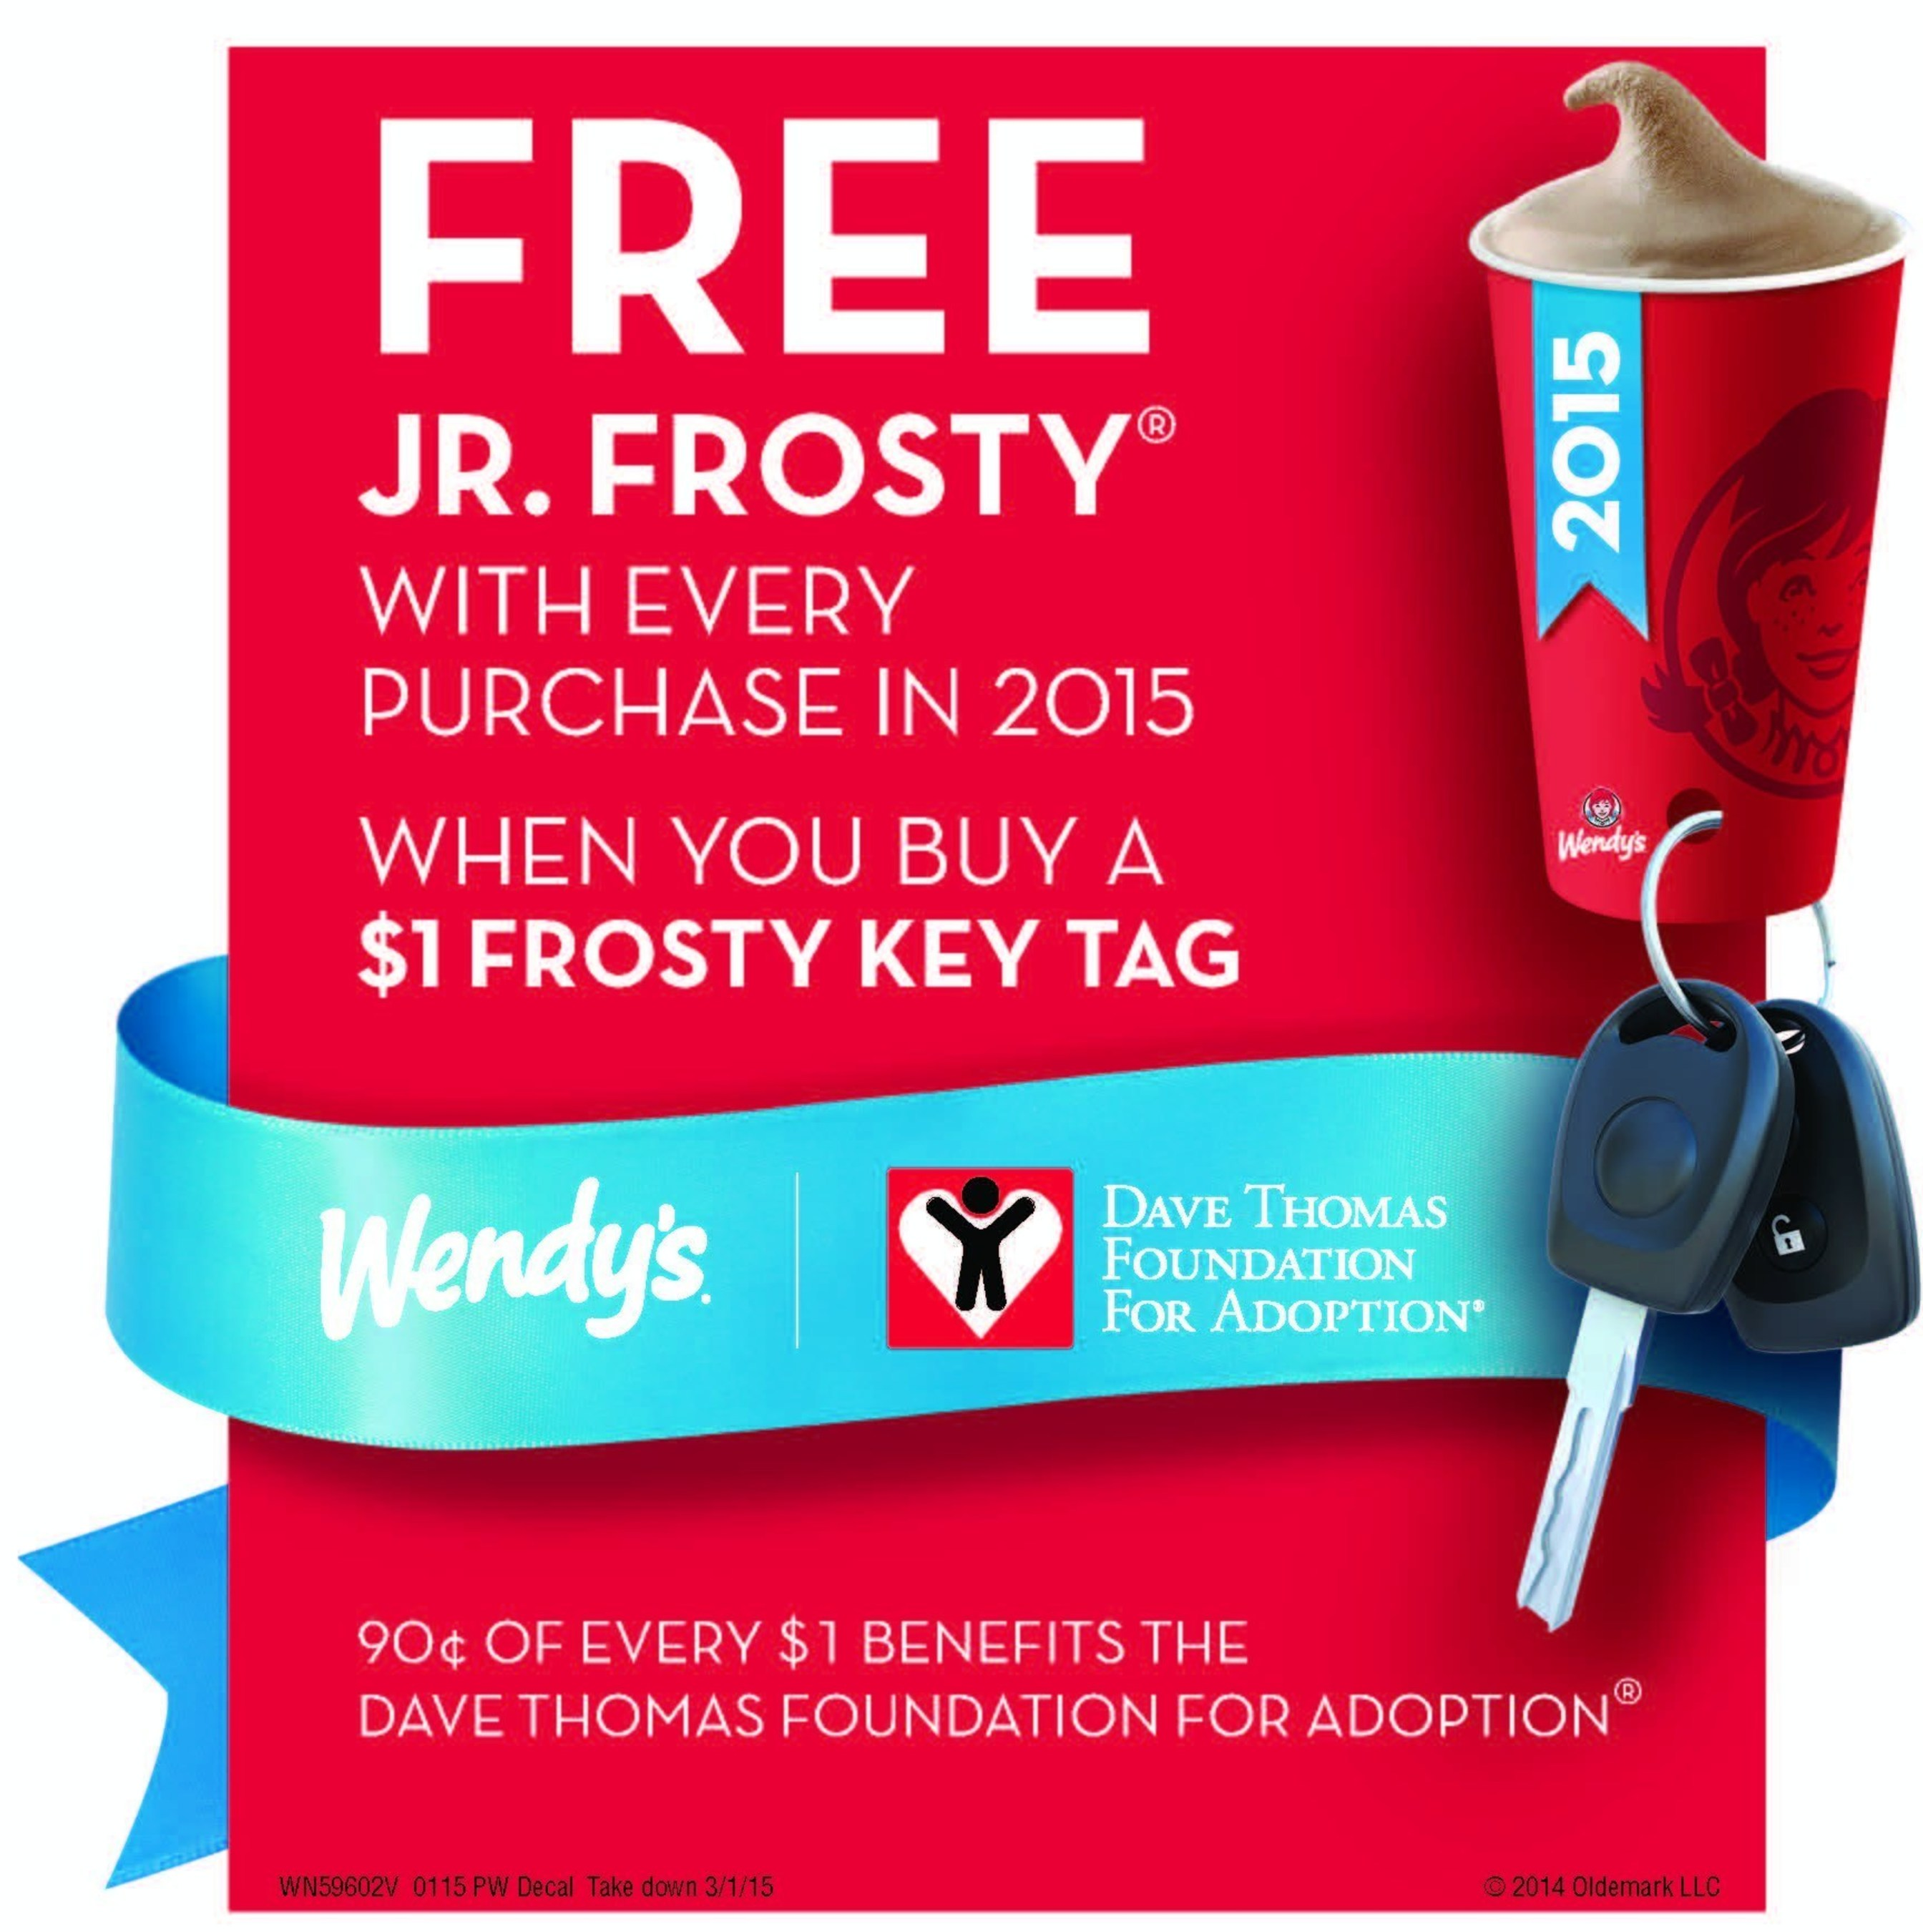 For $1, Wendy's customers can buy a Frosty Key Tag that gets them a free Jr. Frosty with every purchase ...